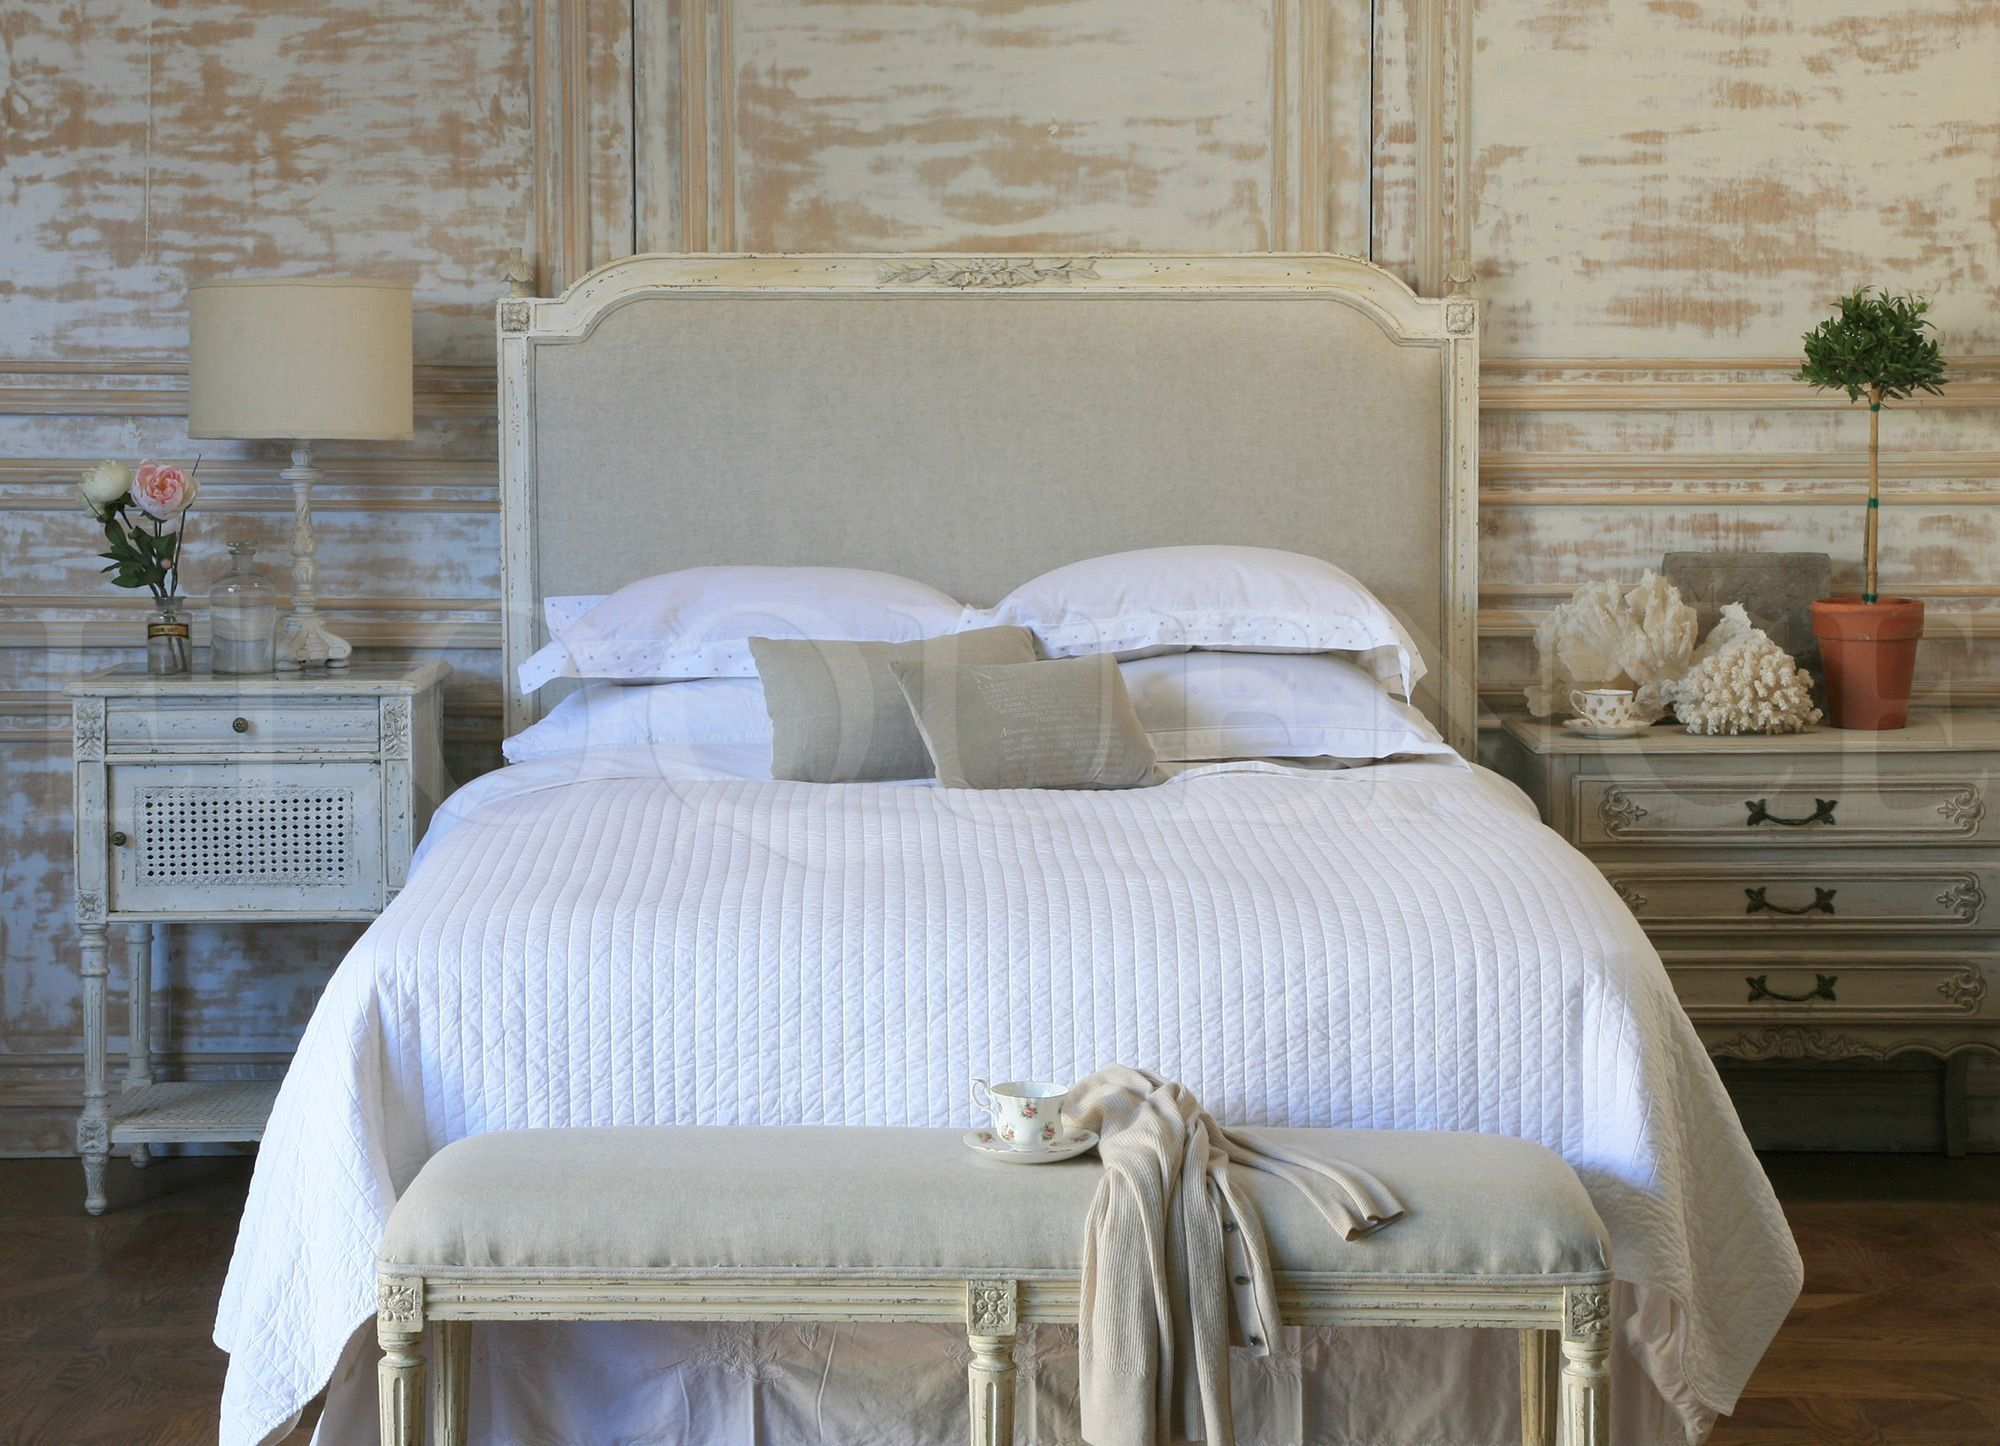 Eloquence Blanka Upholstered Headboard in Antique White